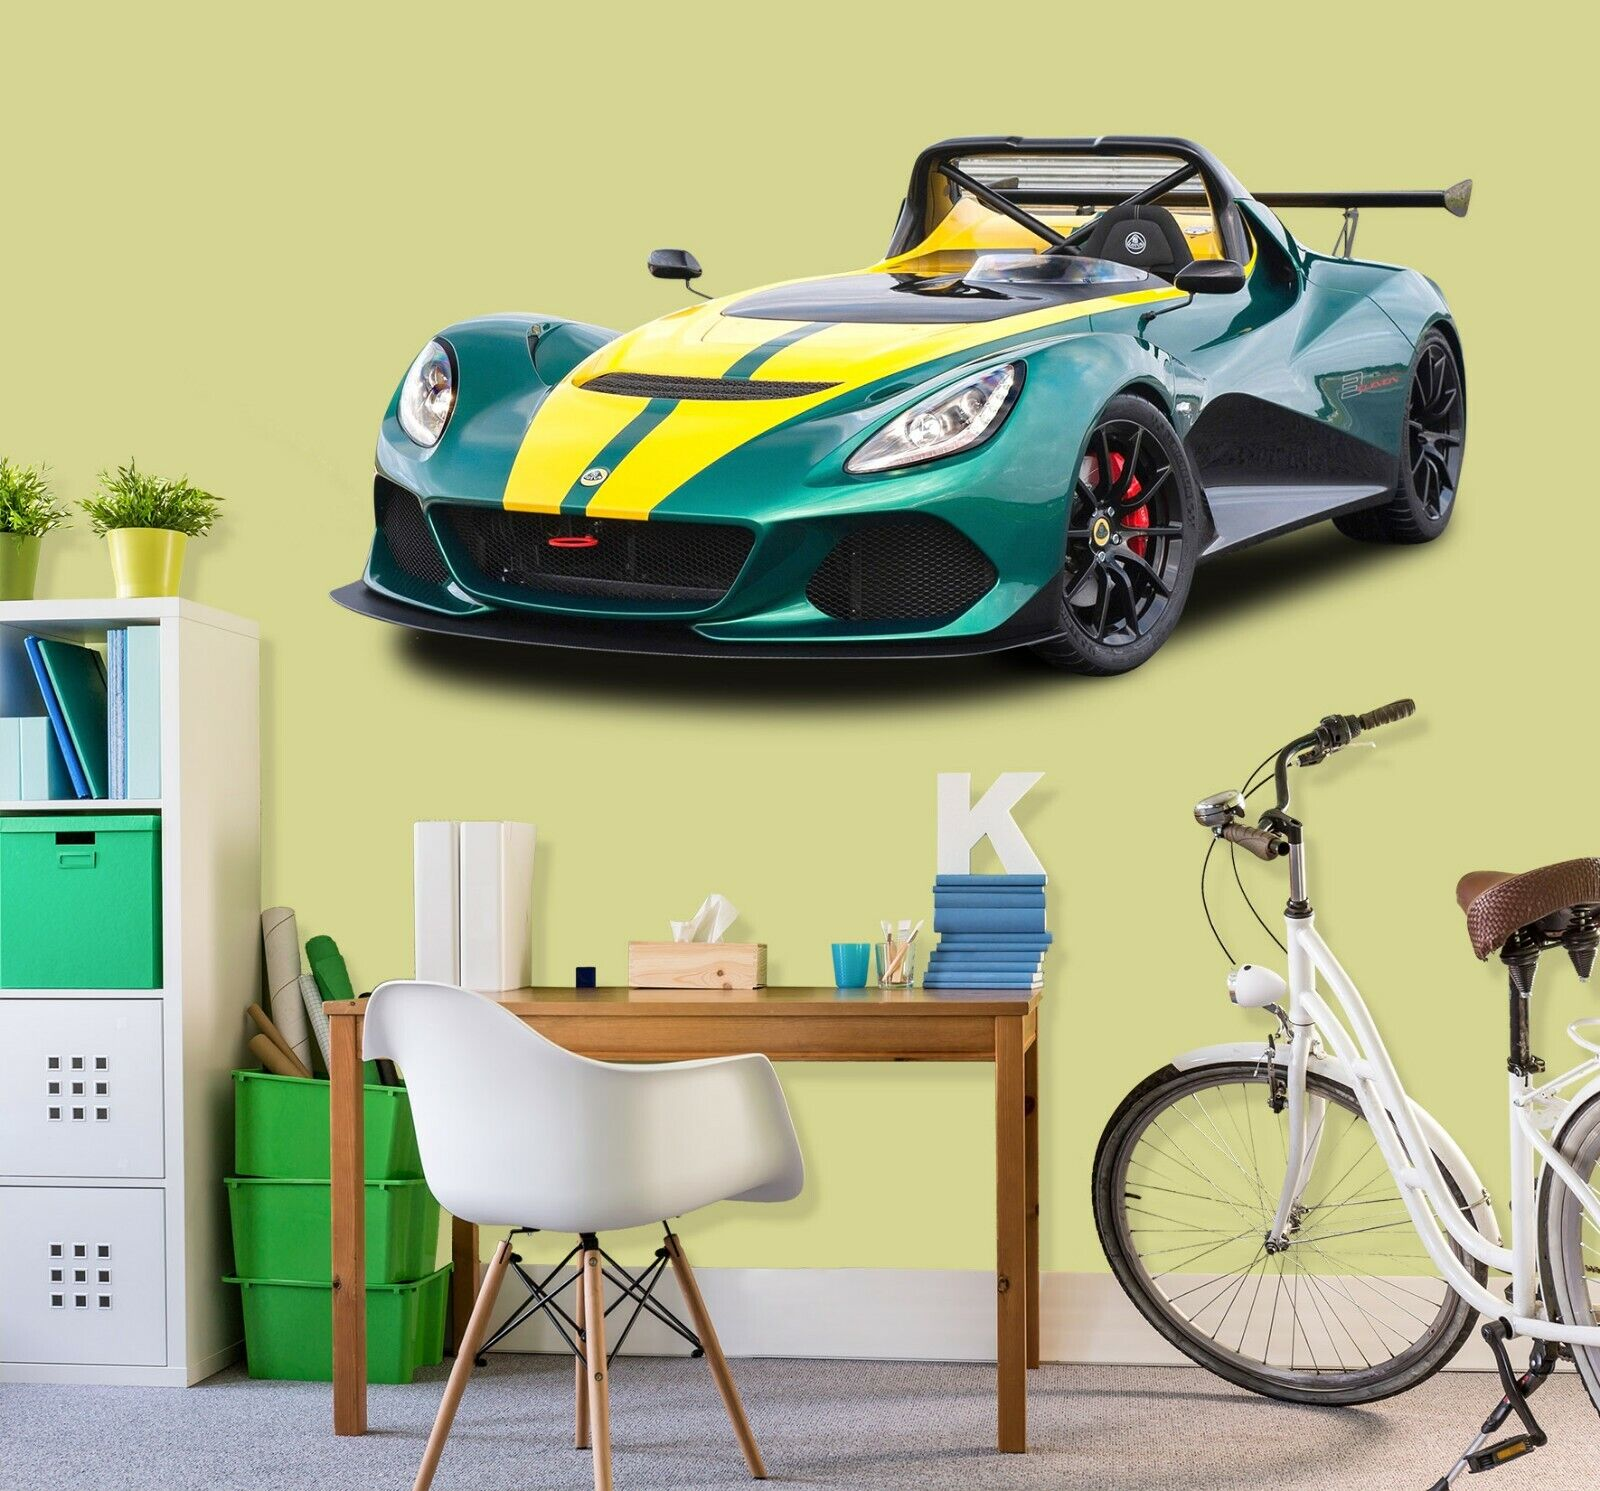 3D Lotus N82 Car Wallpaper Mural Poster Transport Wall Stickers Amy